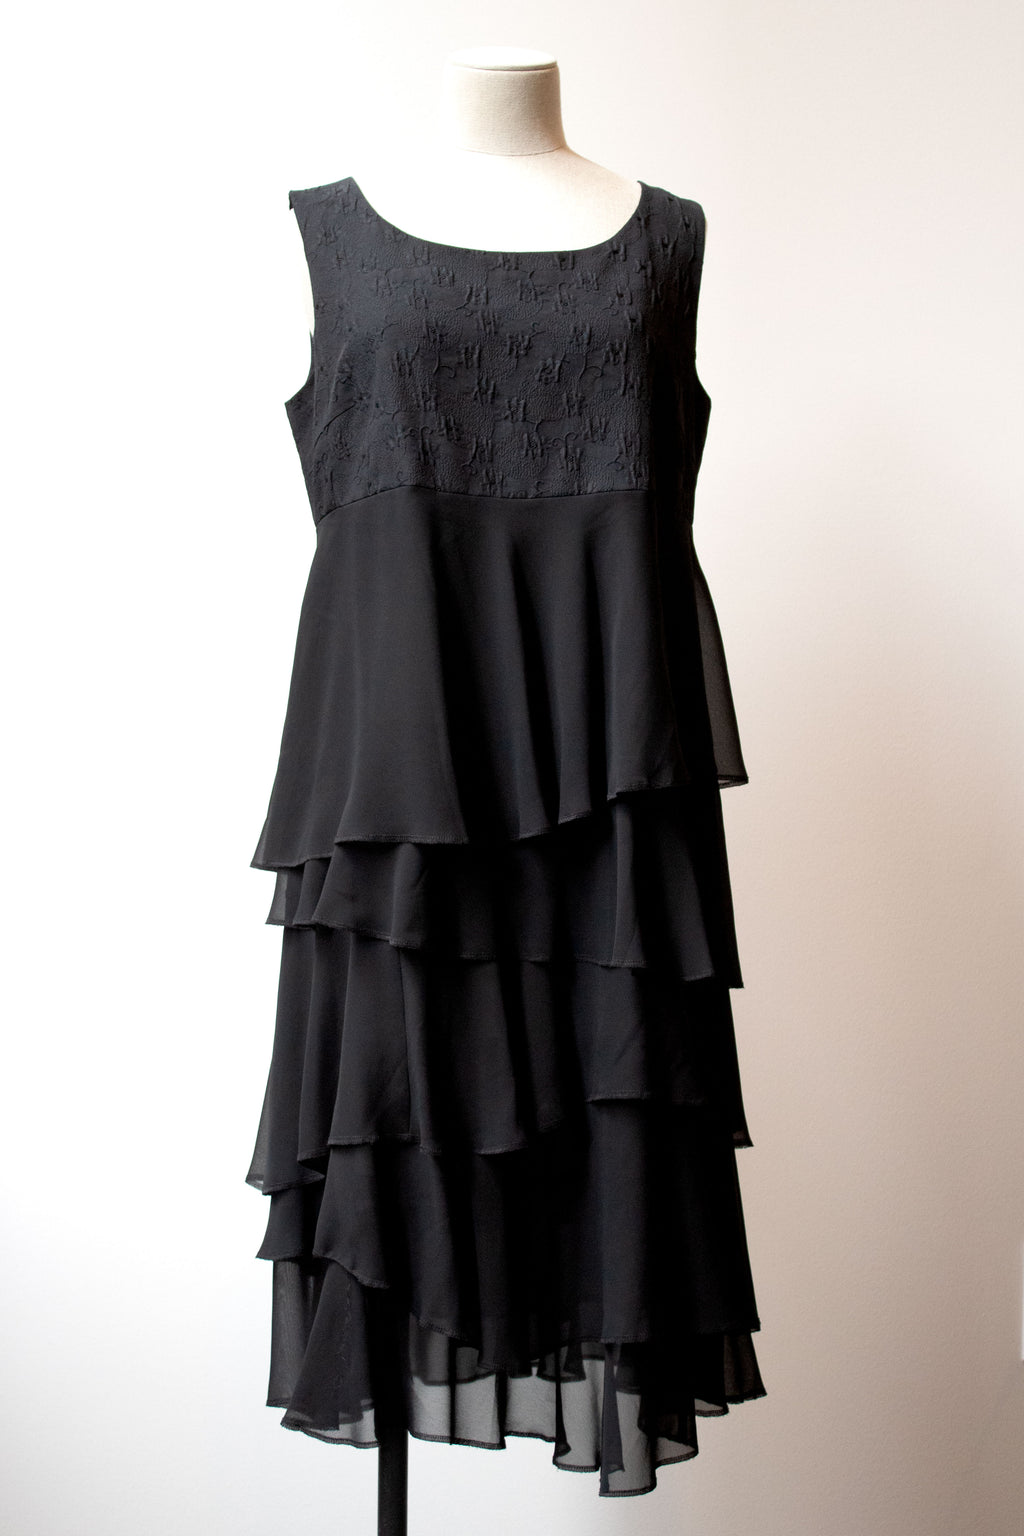 Comme des Garcons Comme des Garcons black tiered sleeveless dress